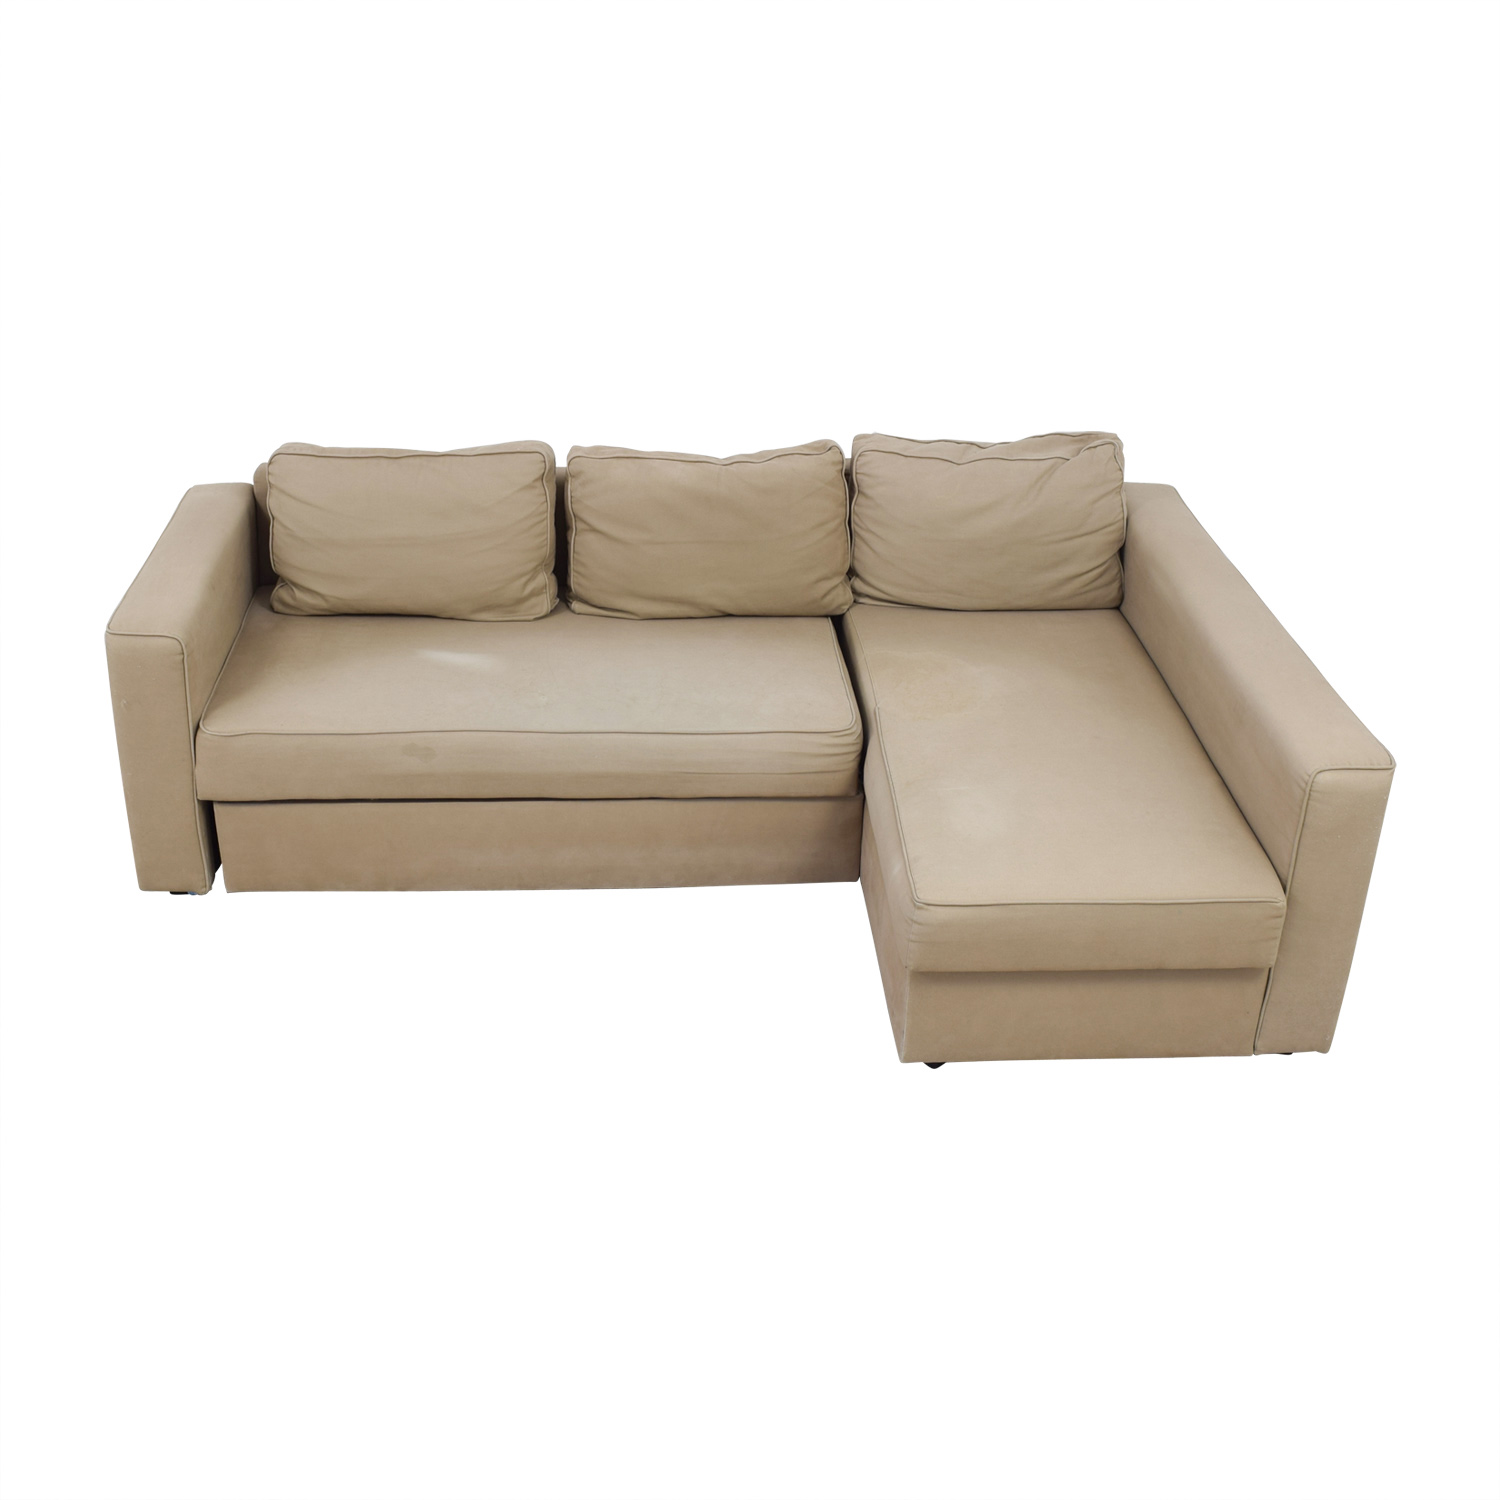 Ikea L Shaped Sofa Bed Dimensions 62 Off Ikea Ikea Manstad Sectional Sofa Bed With